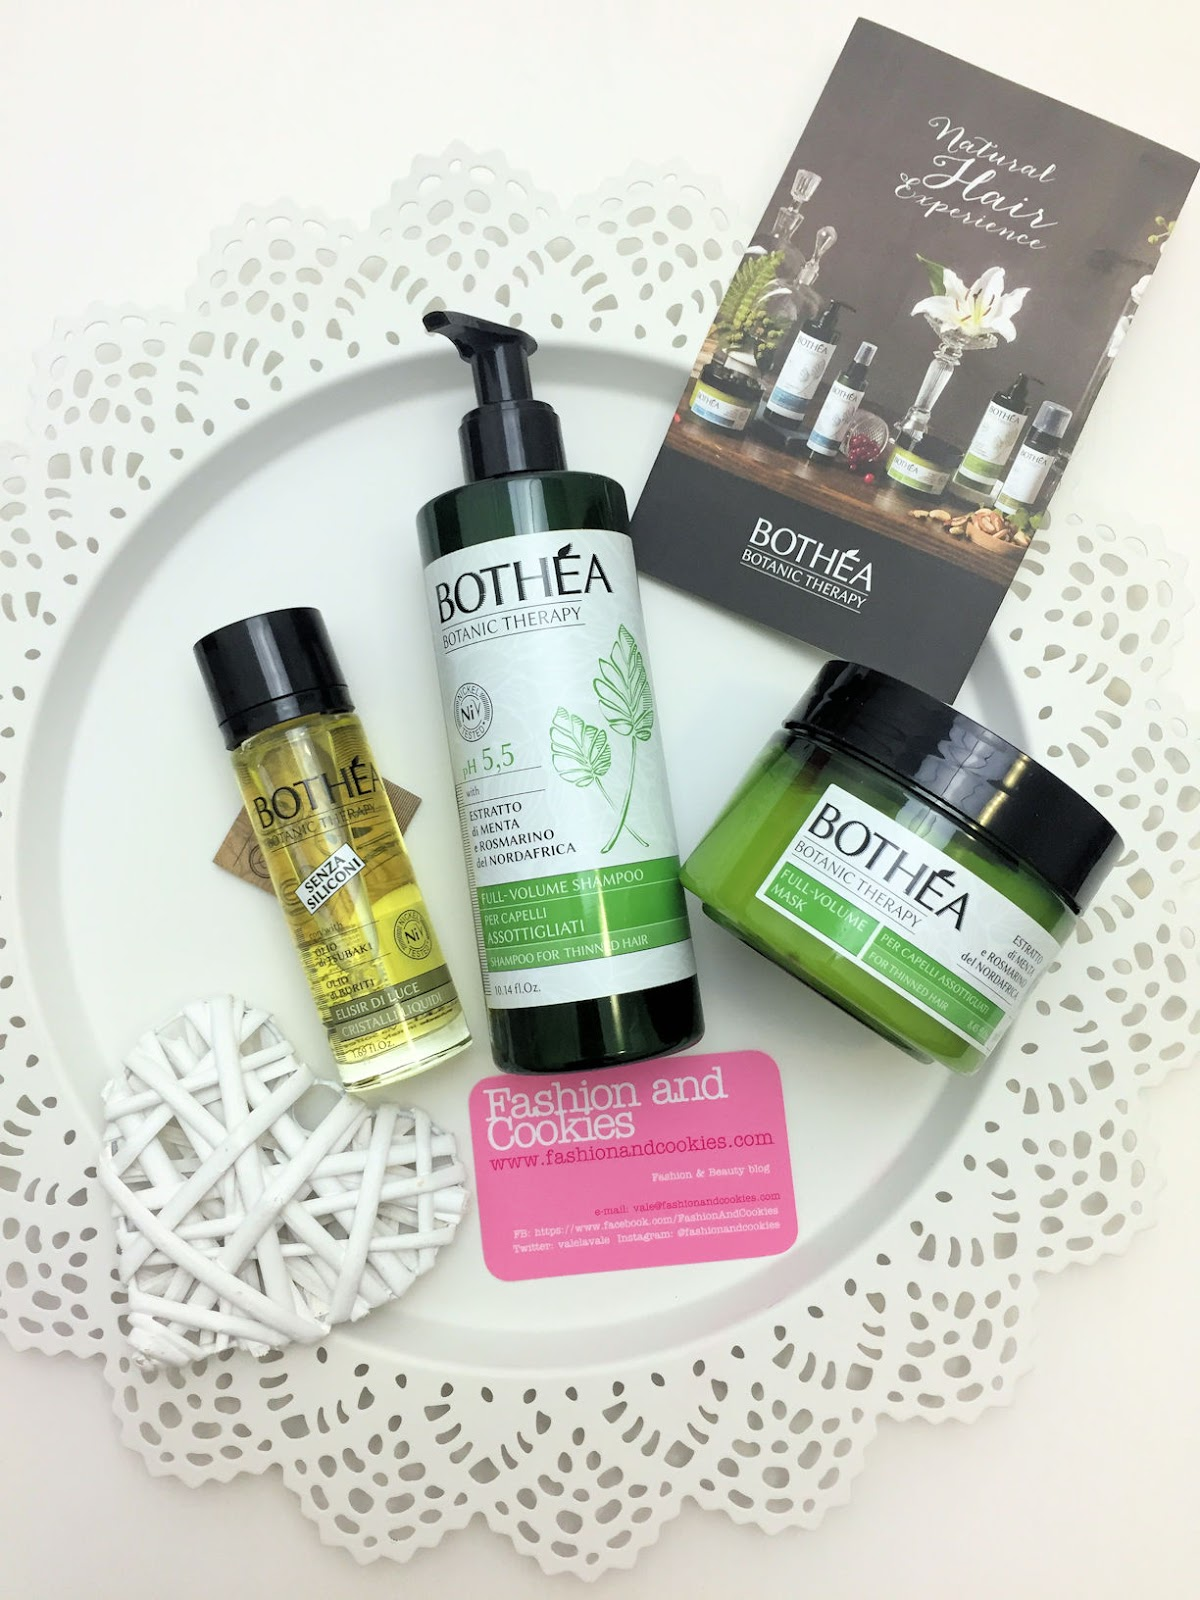 Bothéa Natural Hair Experience: prodotti naturali per capelli su Fashion and Cookies fashion blog, fashion blogger style